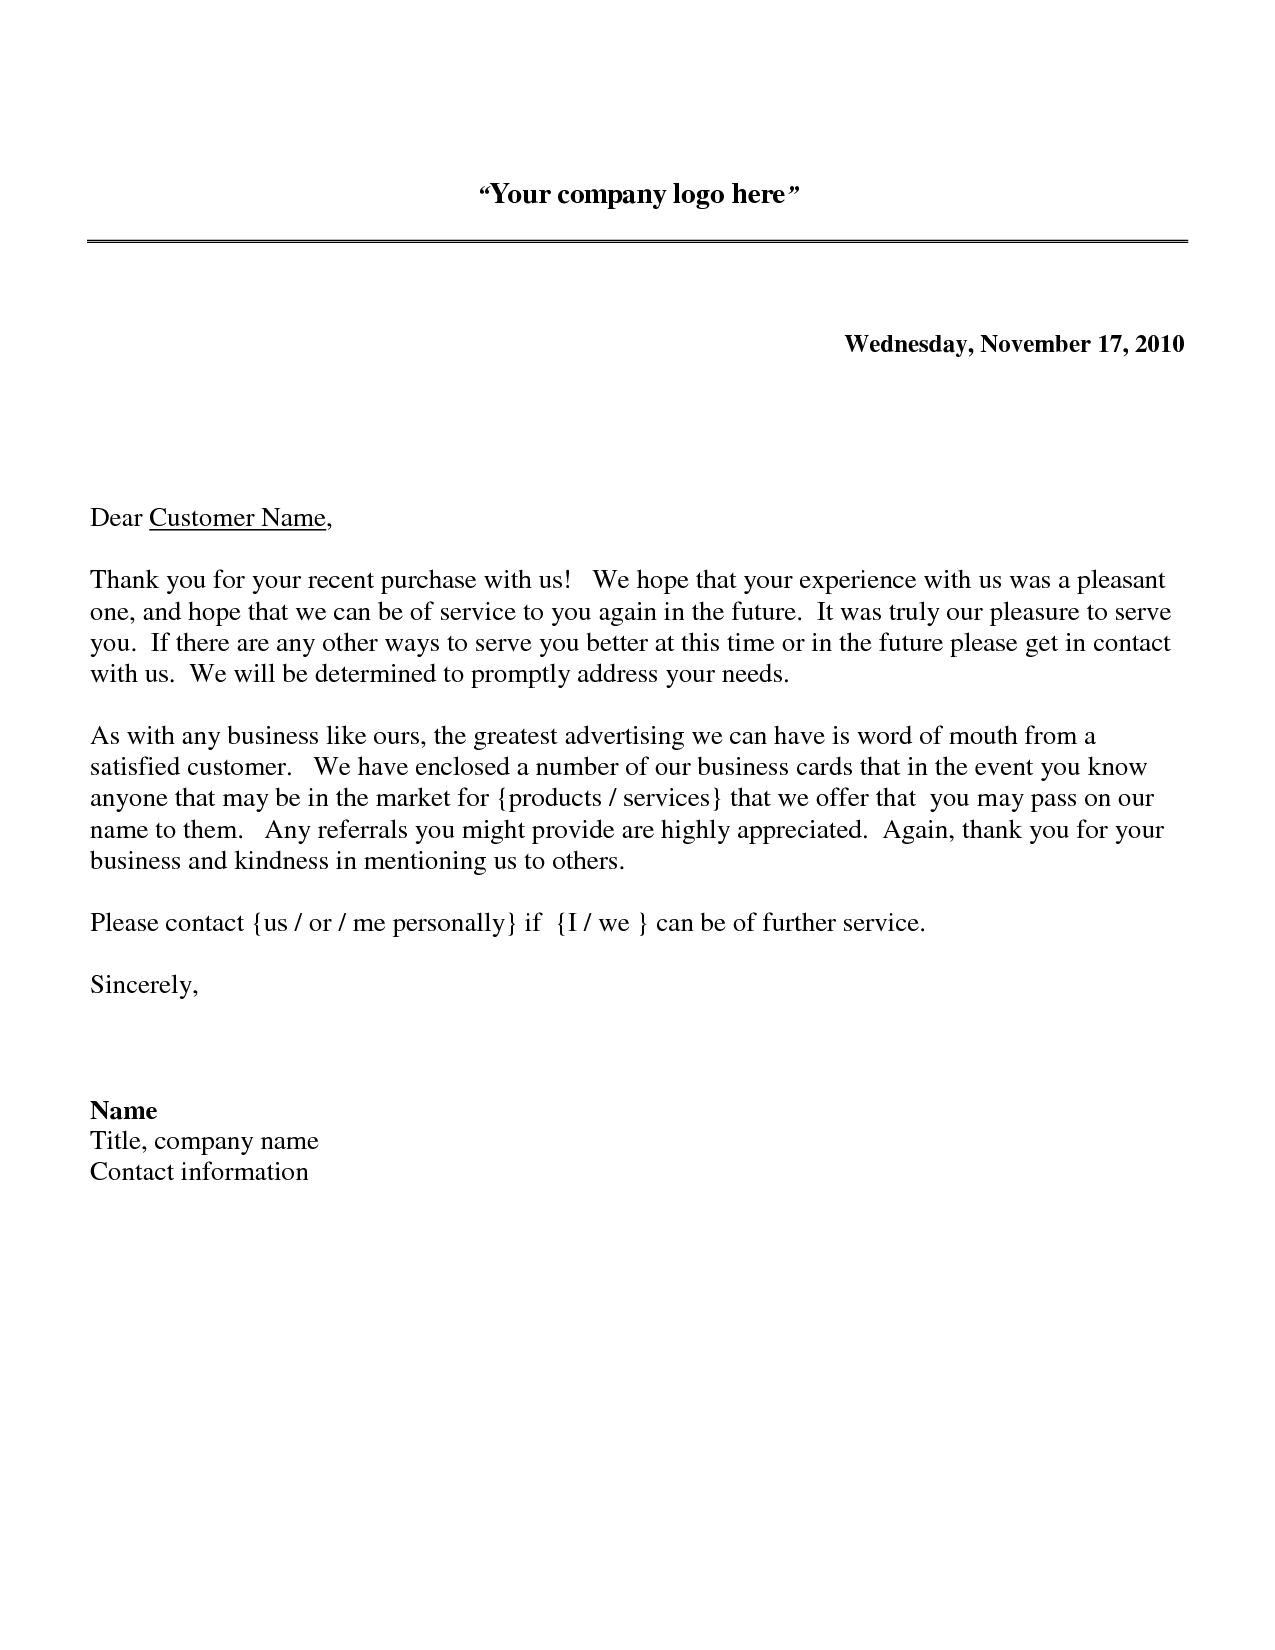 Business thank you letter to client scrumps business thank you letter to client friedricerecipe Images